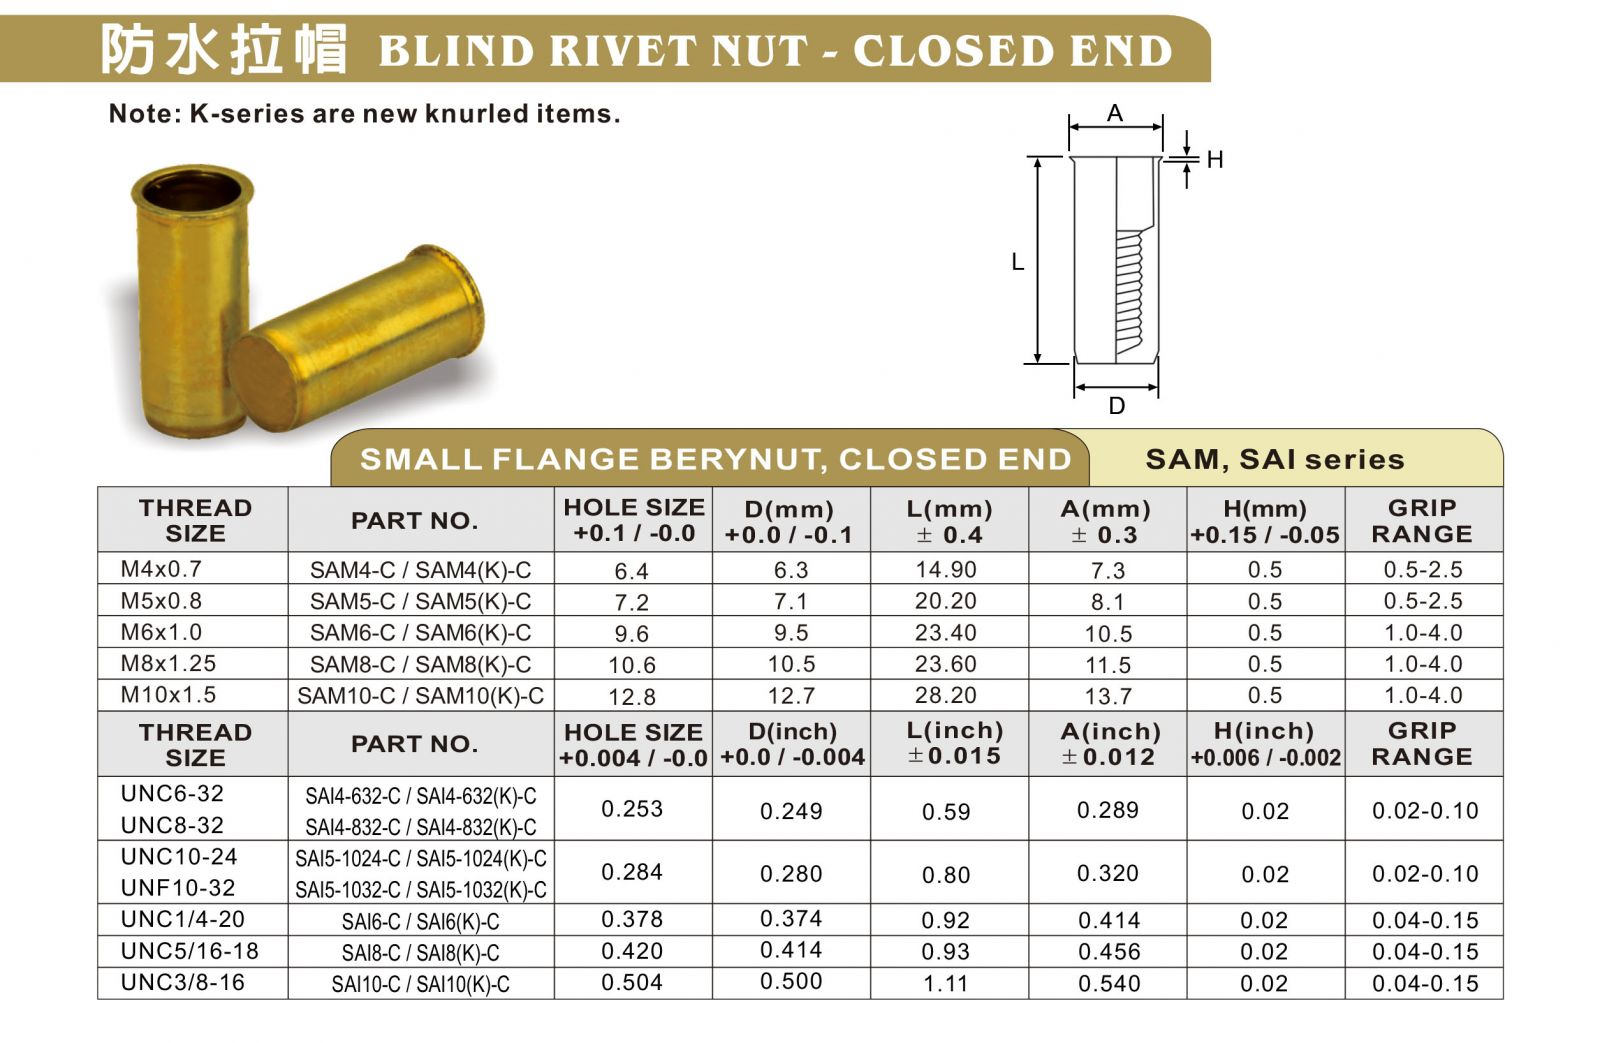 rivet nut,small flange rivet nut,closed end, sam-c, sai-c ,rivet nut,nut,top screw,fasteners,metal forging,rivet nut manufactory,manufacture